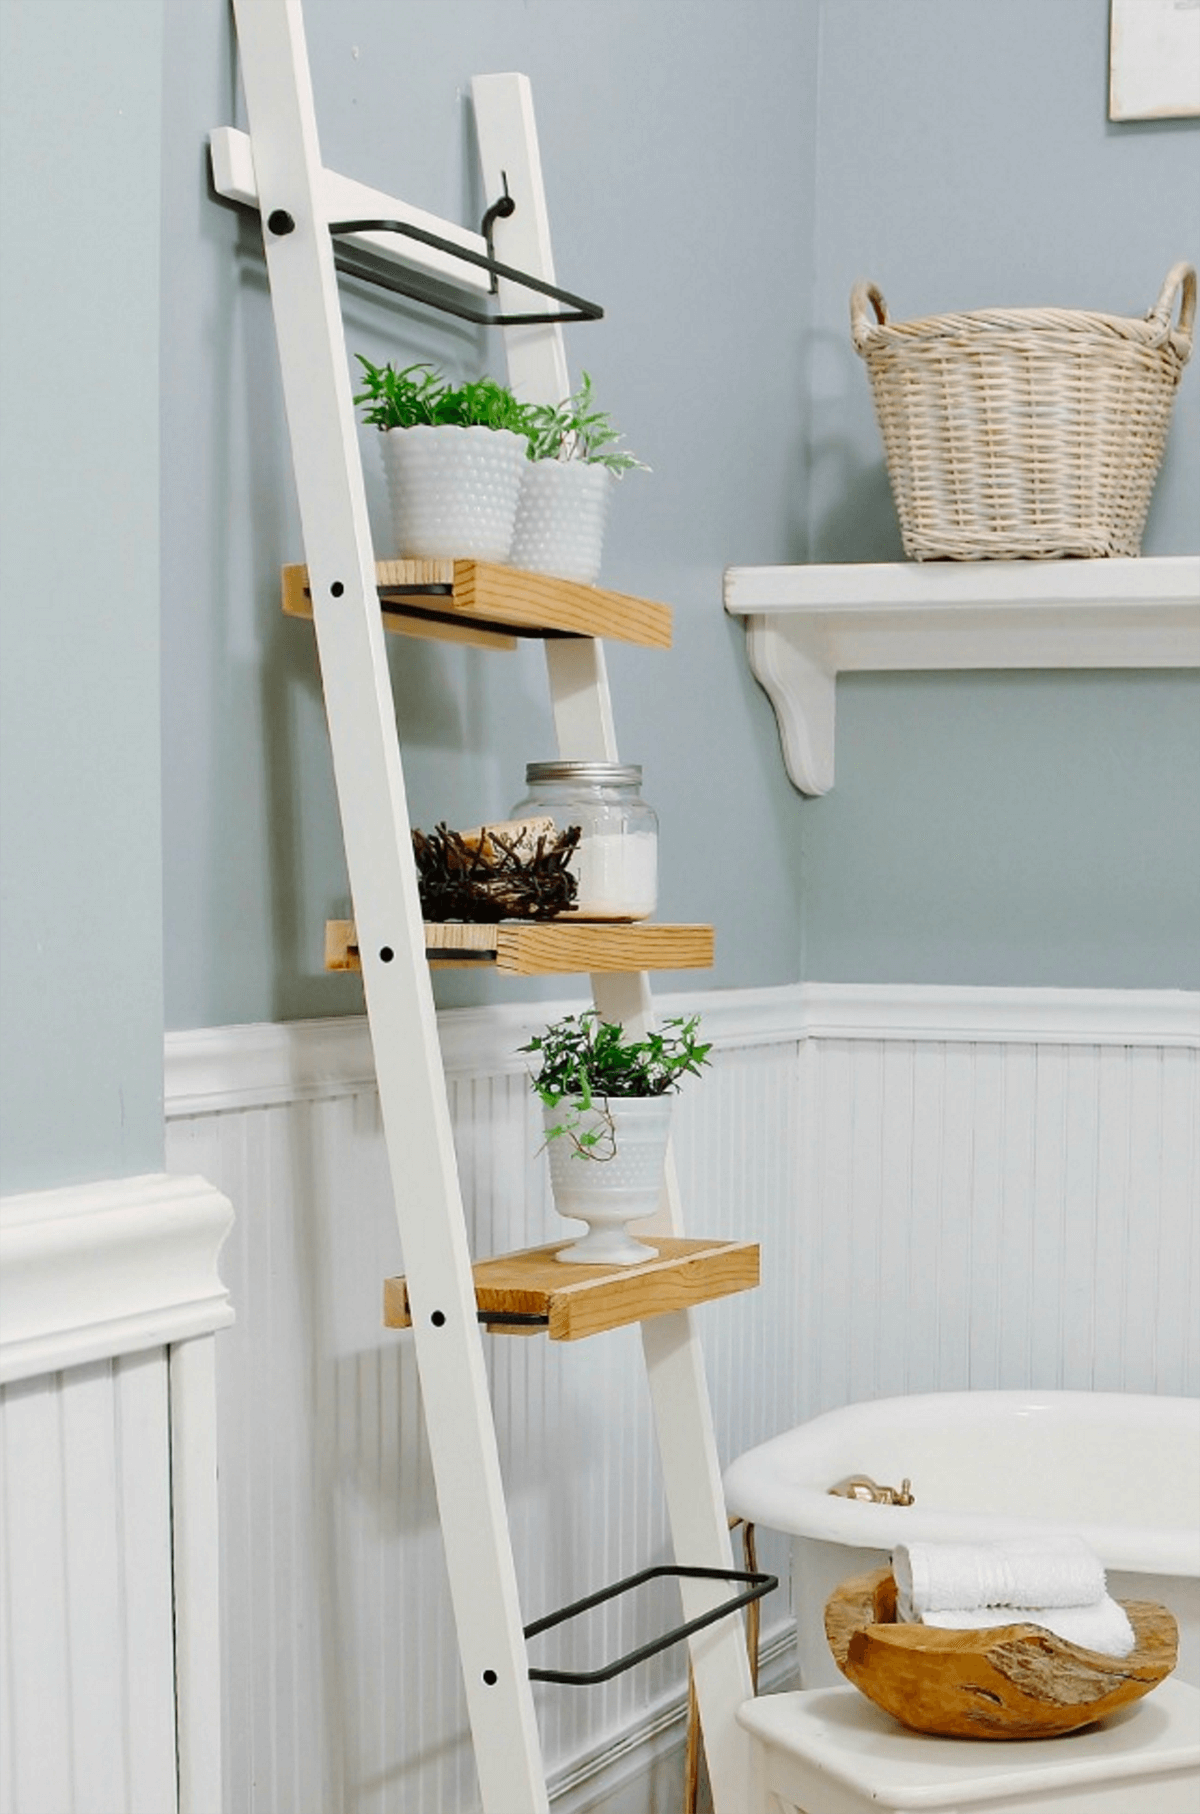 Ladder-Shelf Stand for Small Plants